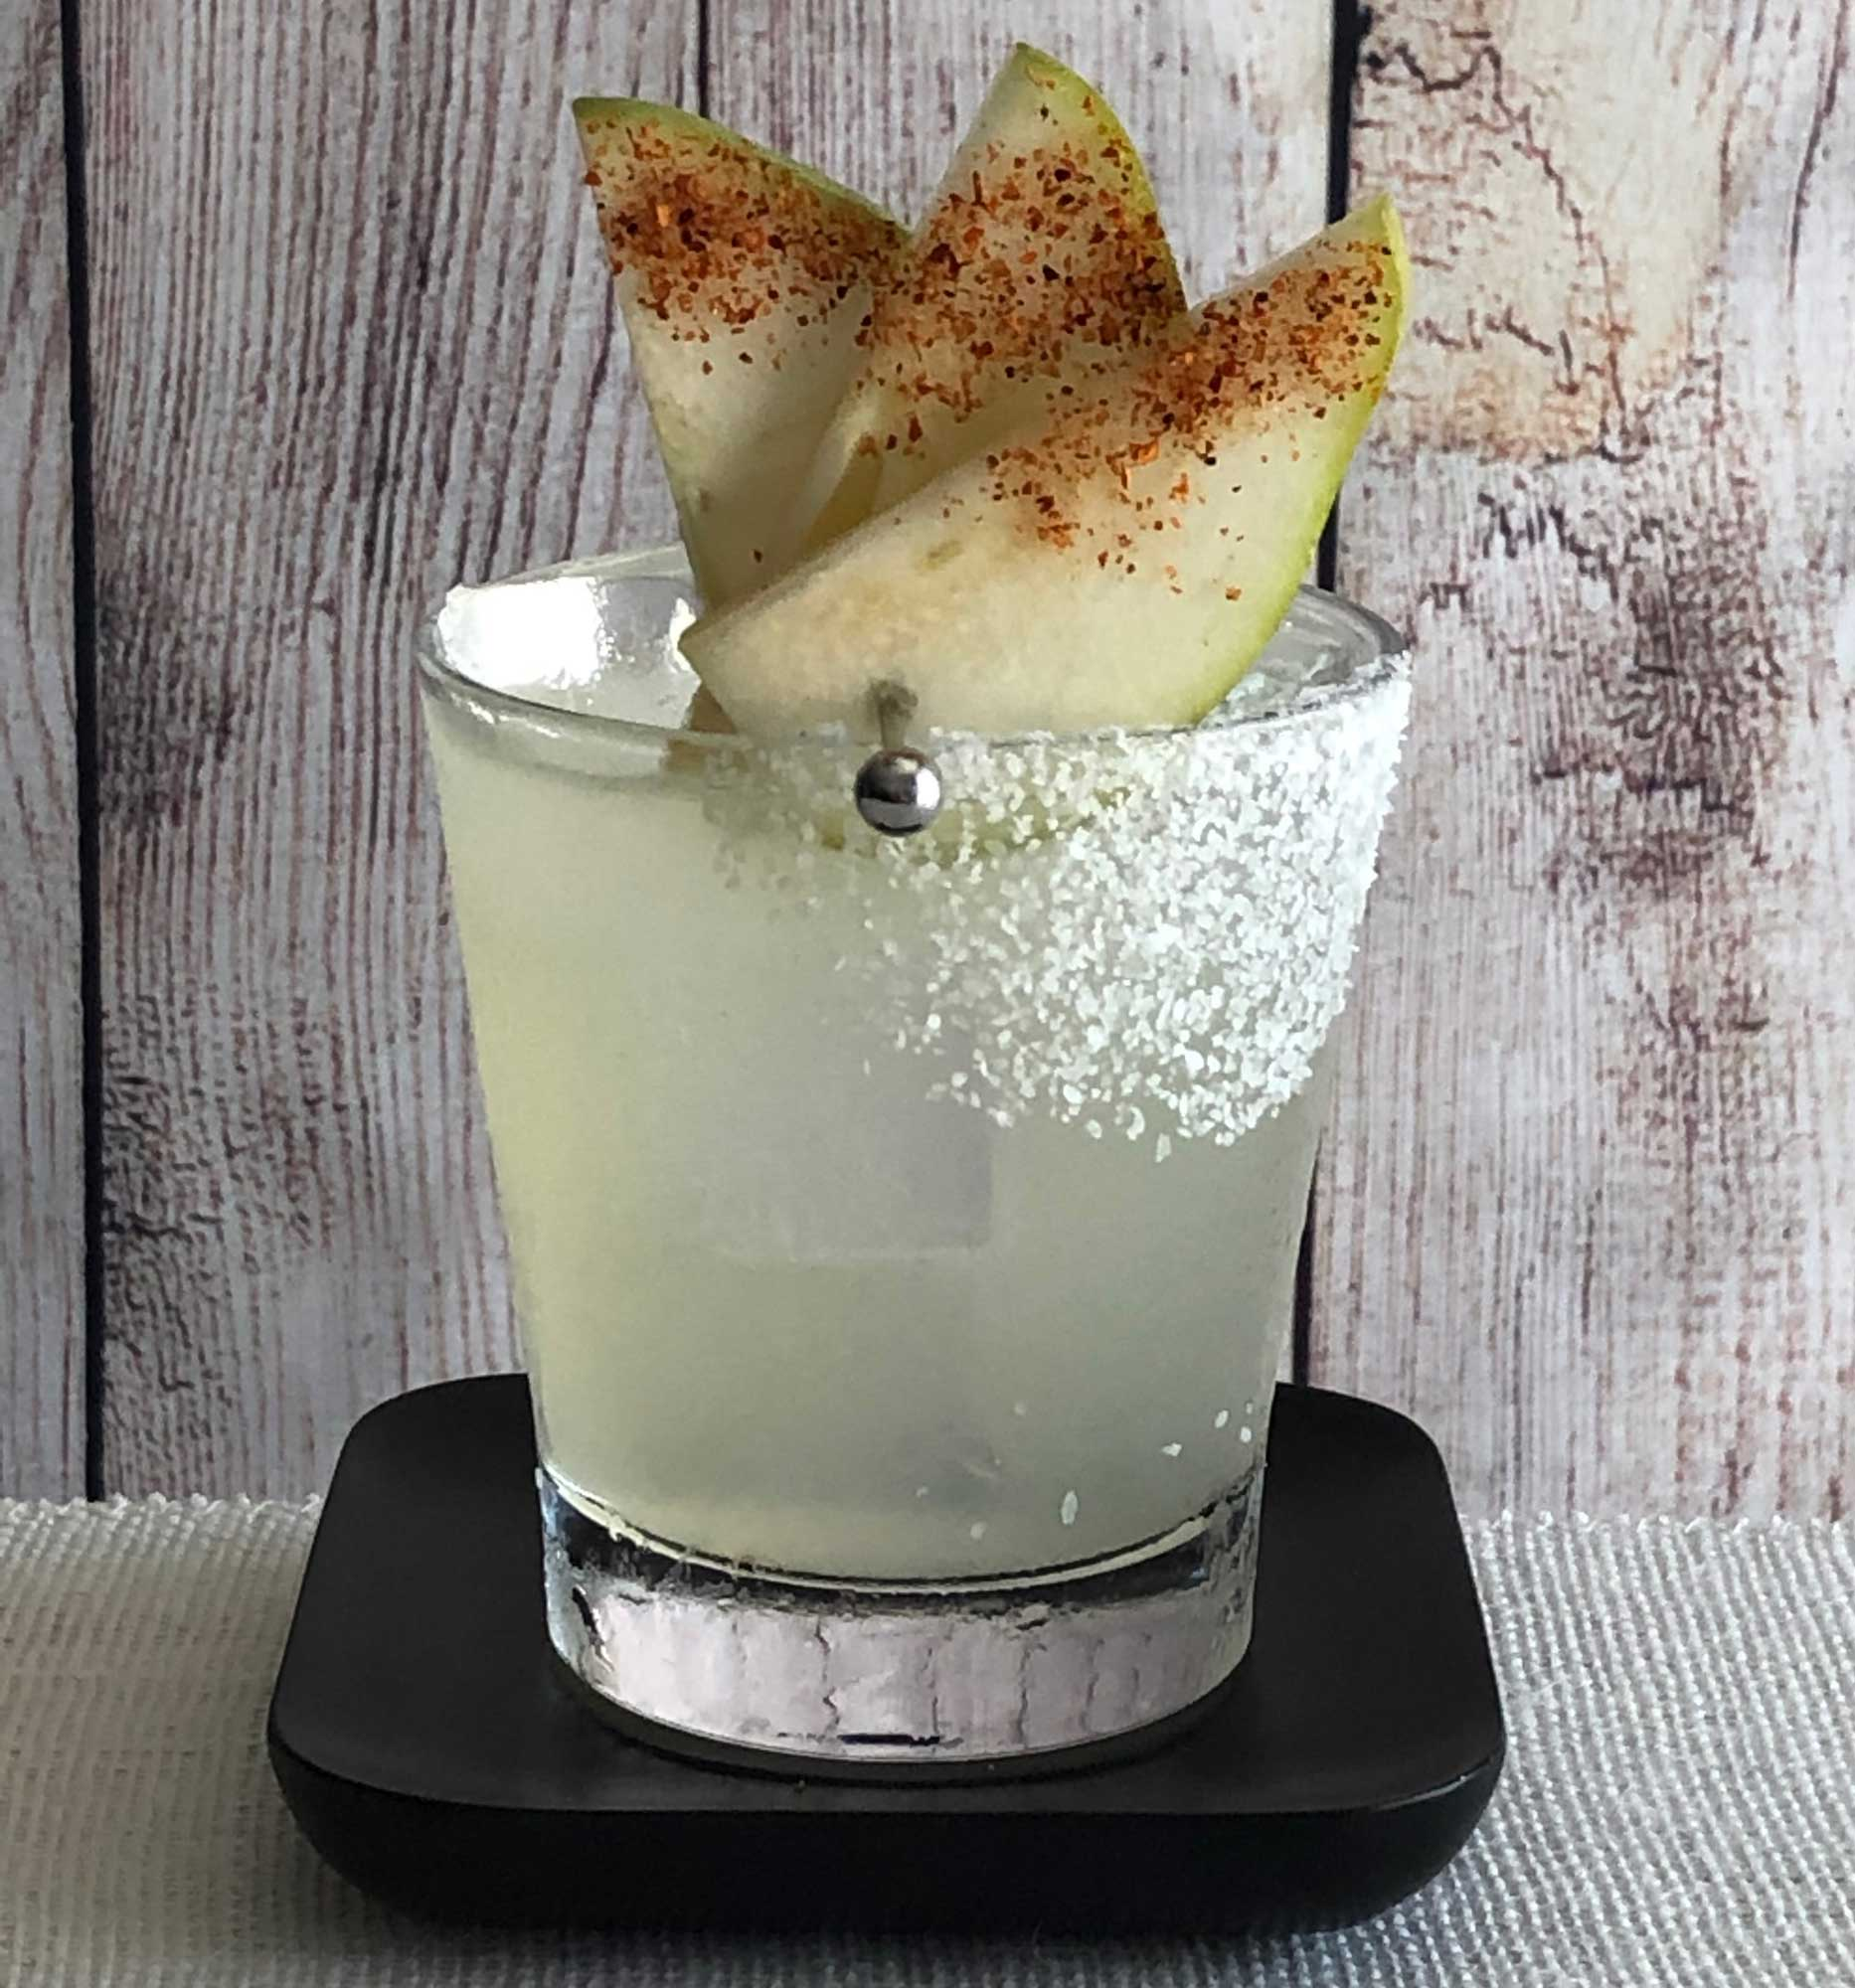 An example of the Ultimate Pear Margarita, the mixed drink (cocktail) featuring blanco tequila, Rothman & Winter Orchard Pear Liqueur, and lime juice; photo by Lee Edwards